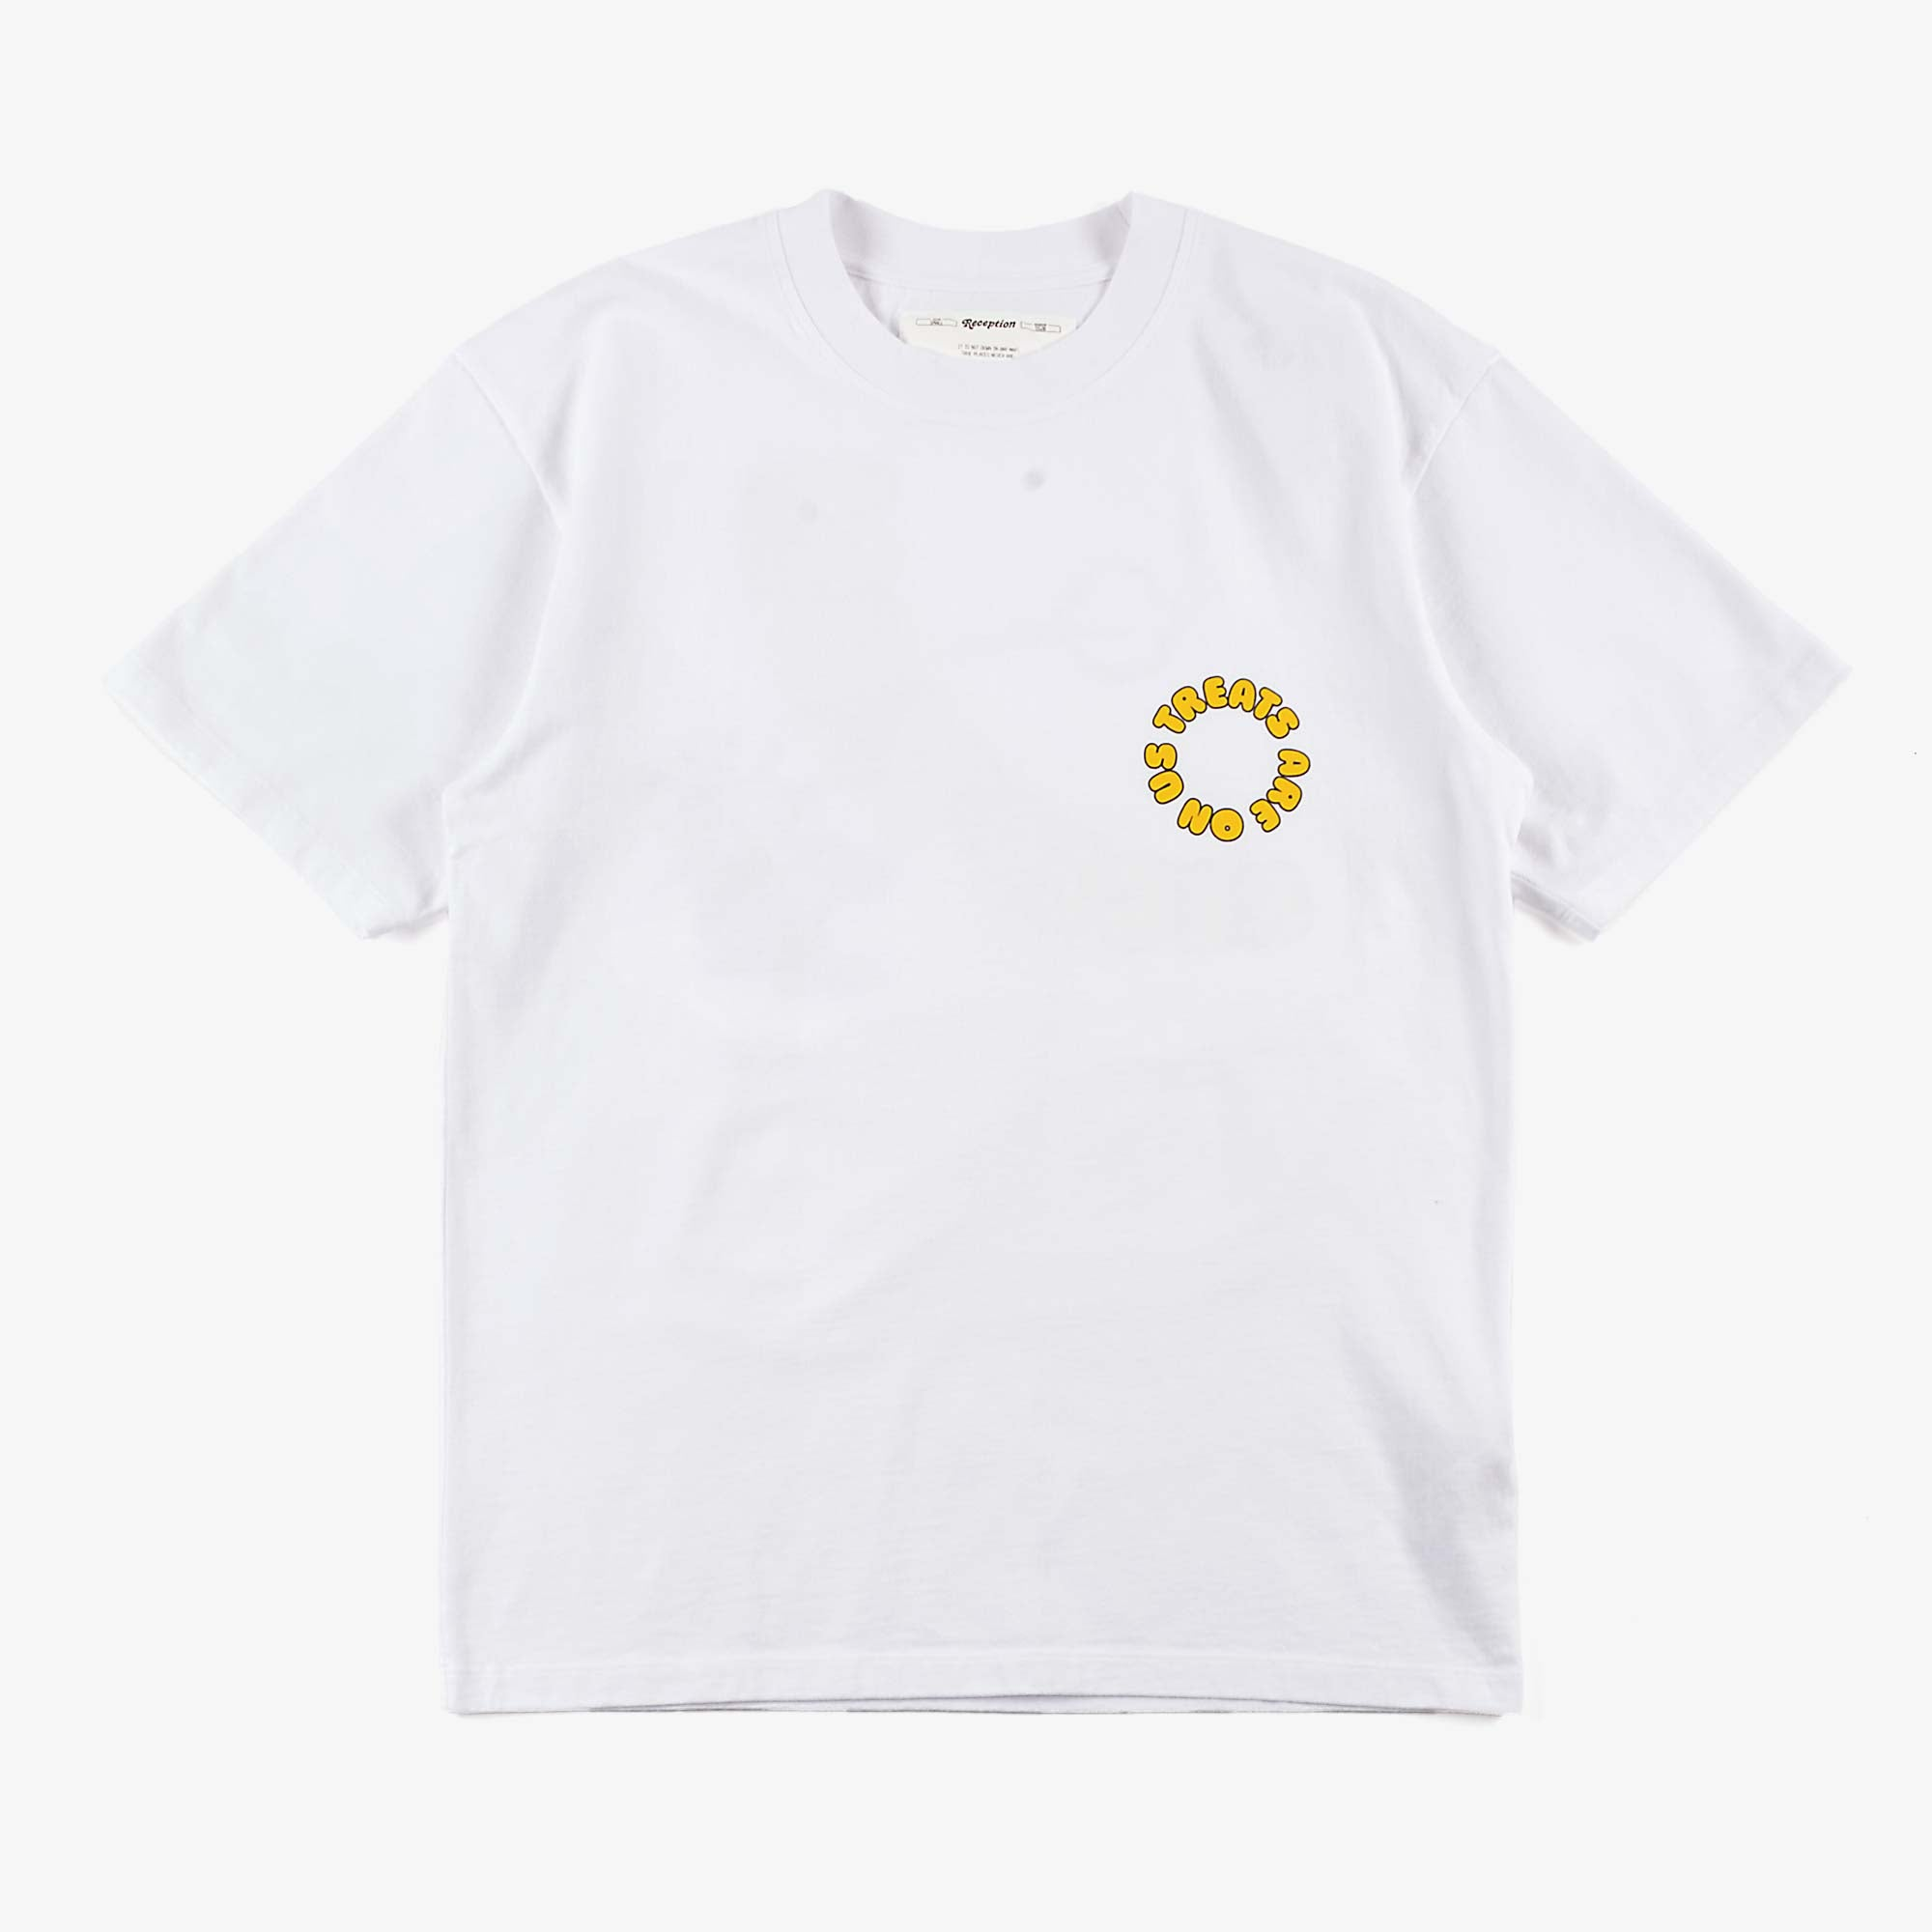 Reception SS Mosquito Tee - White 2